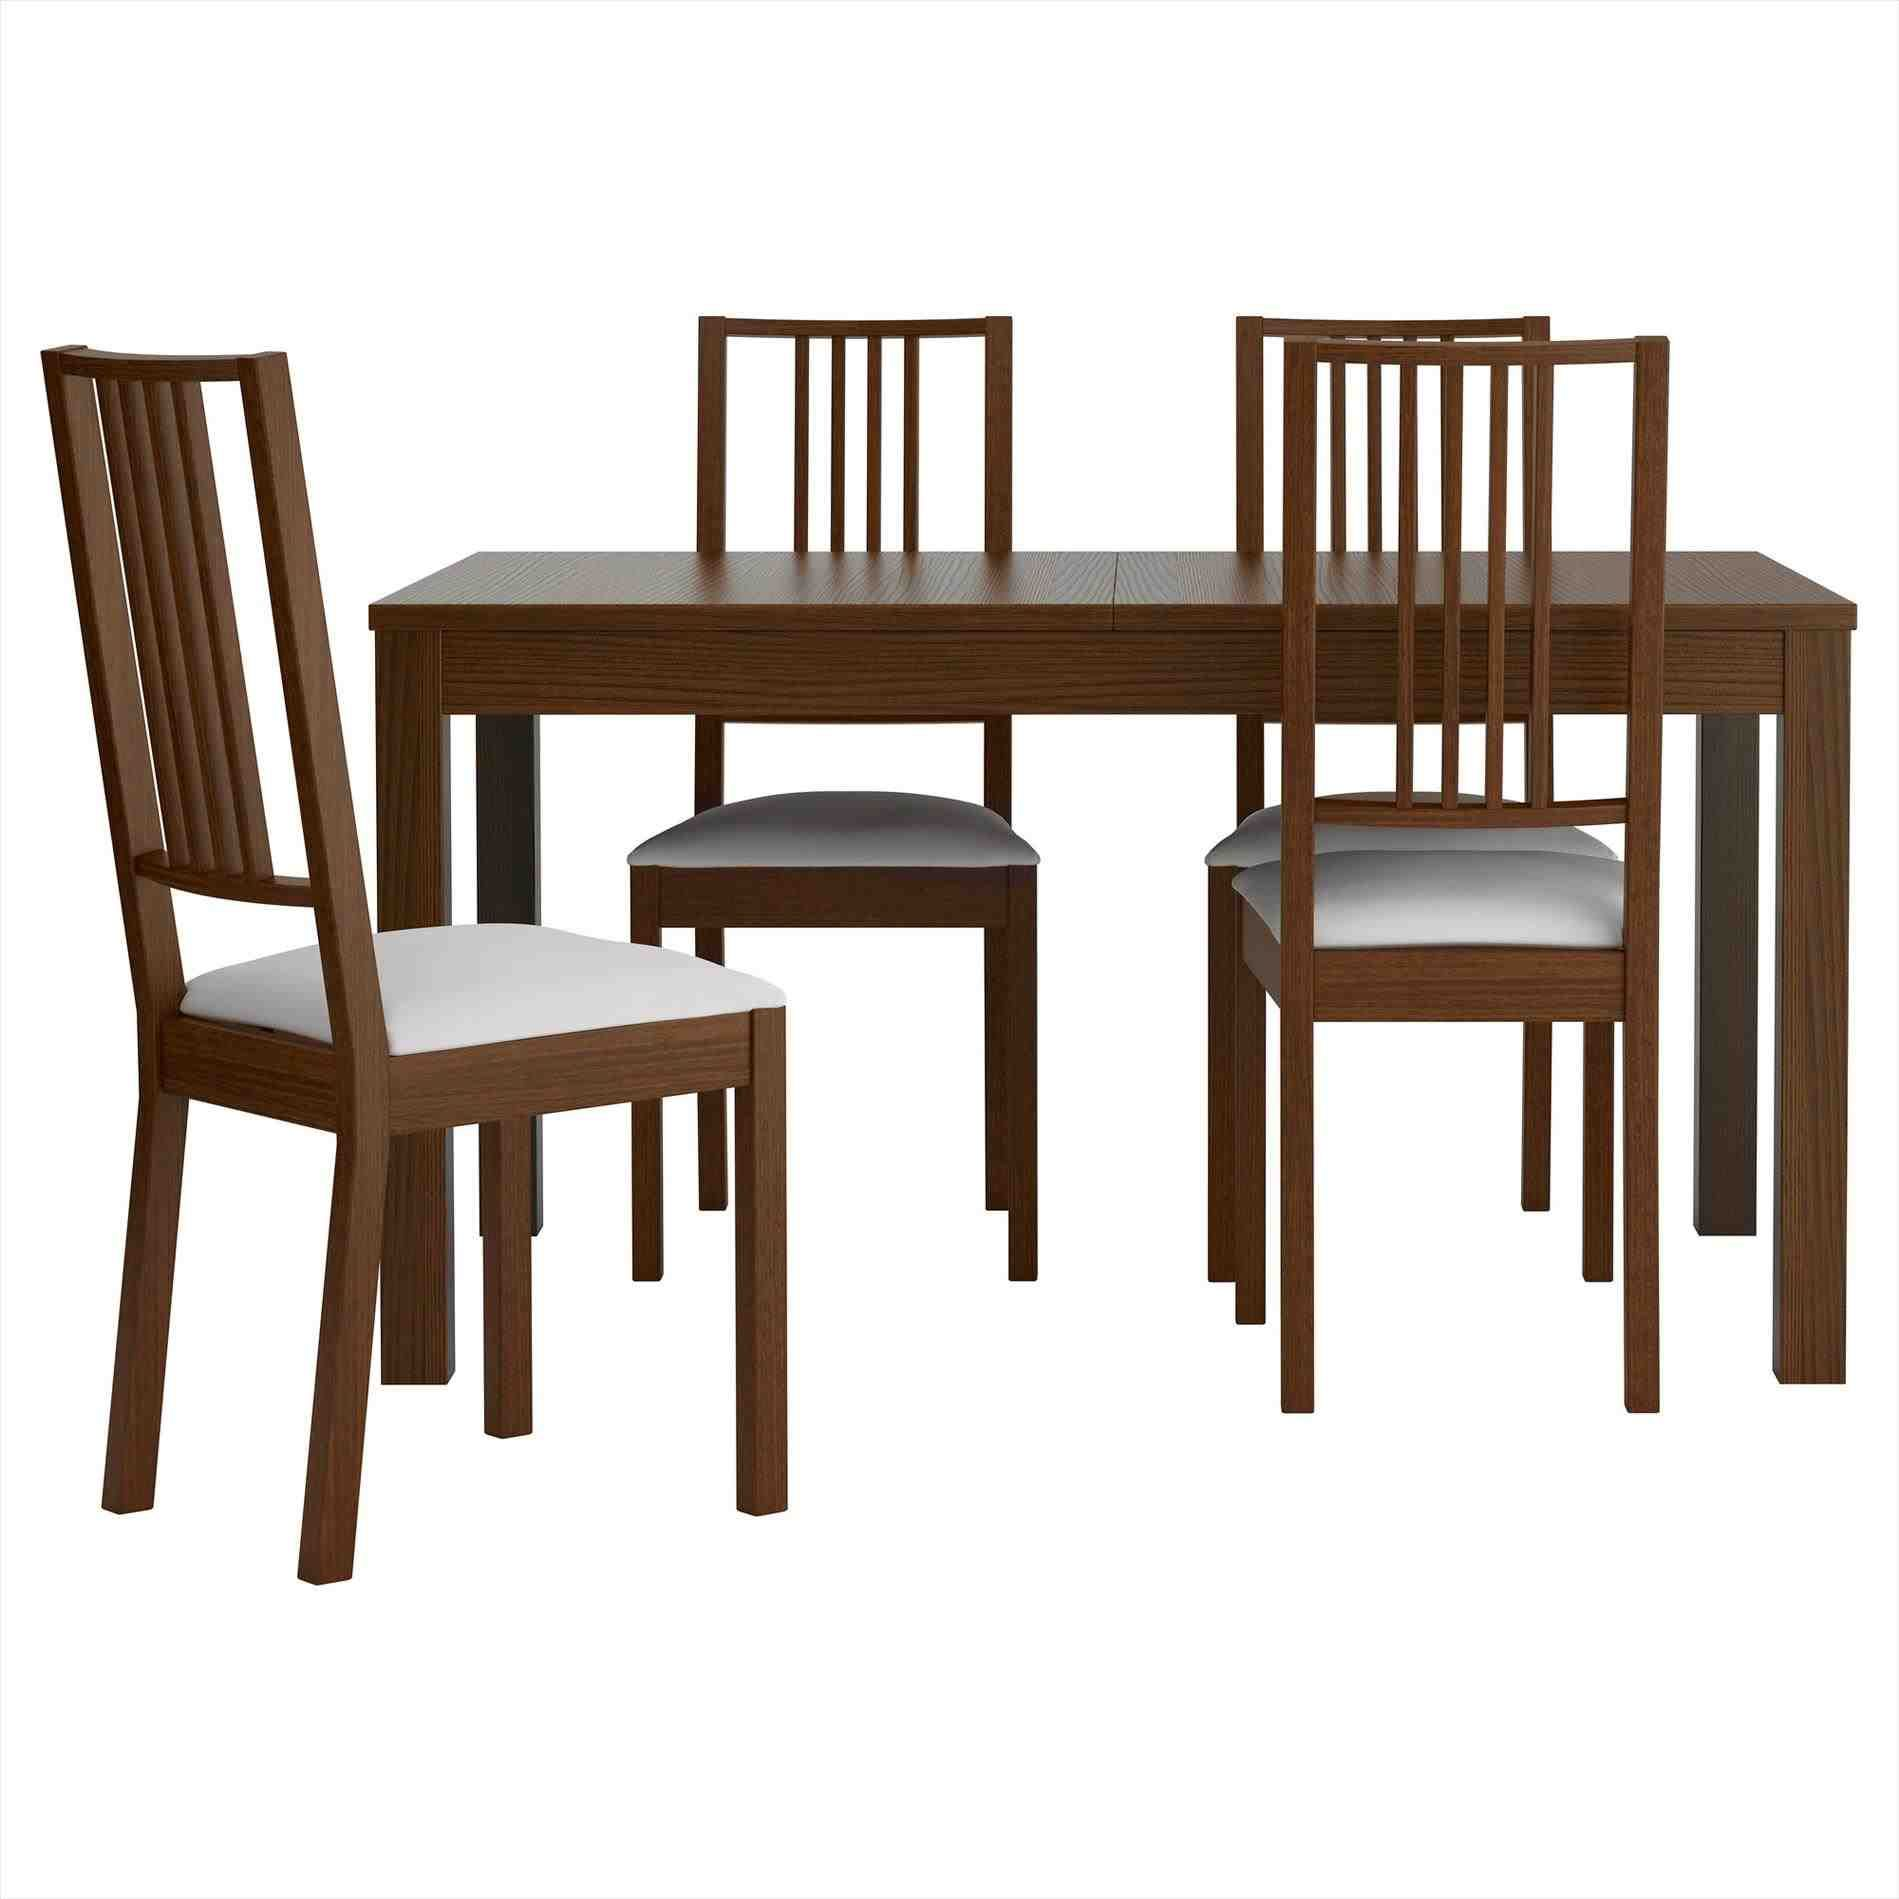 New Dining Table And Chairs Clipart At Temasistemi